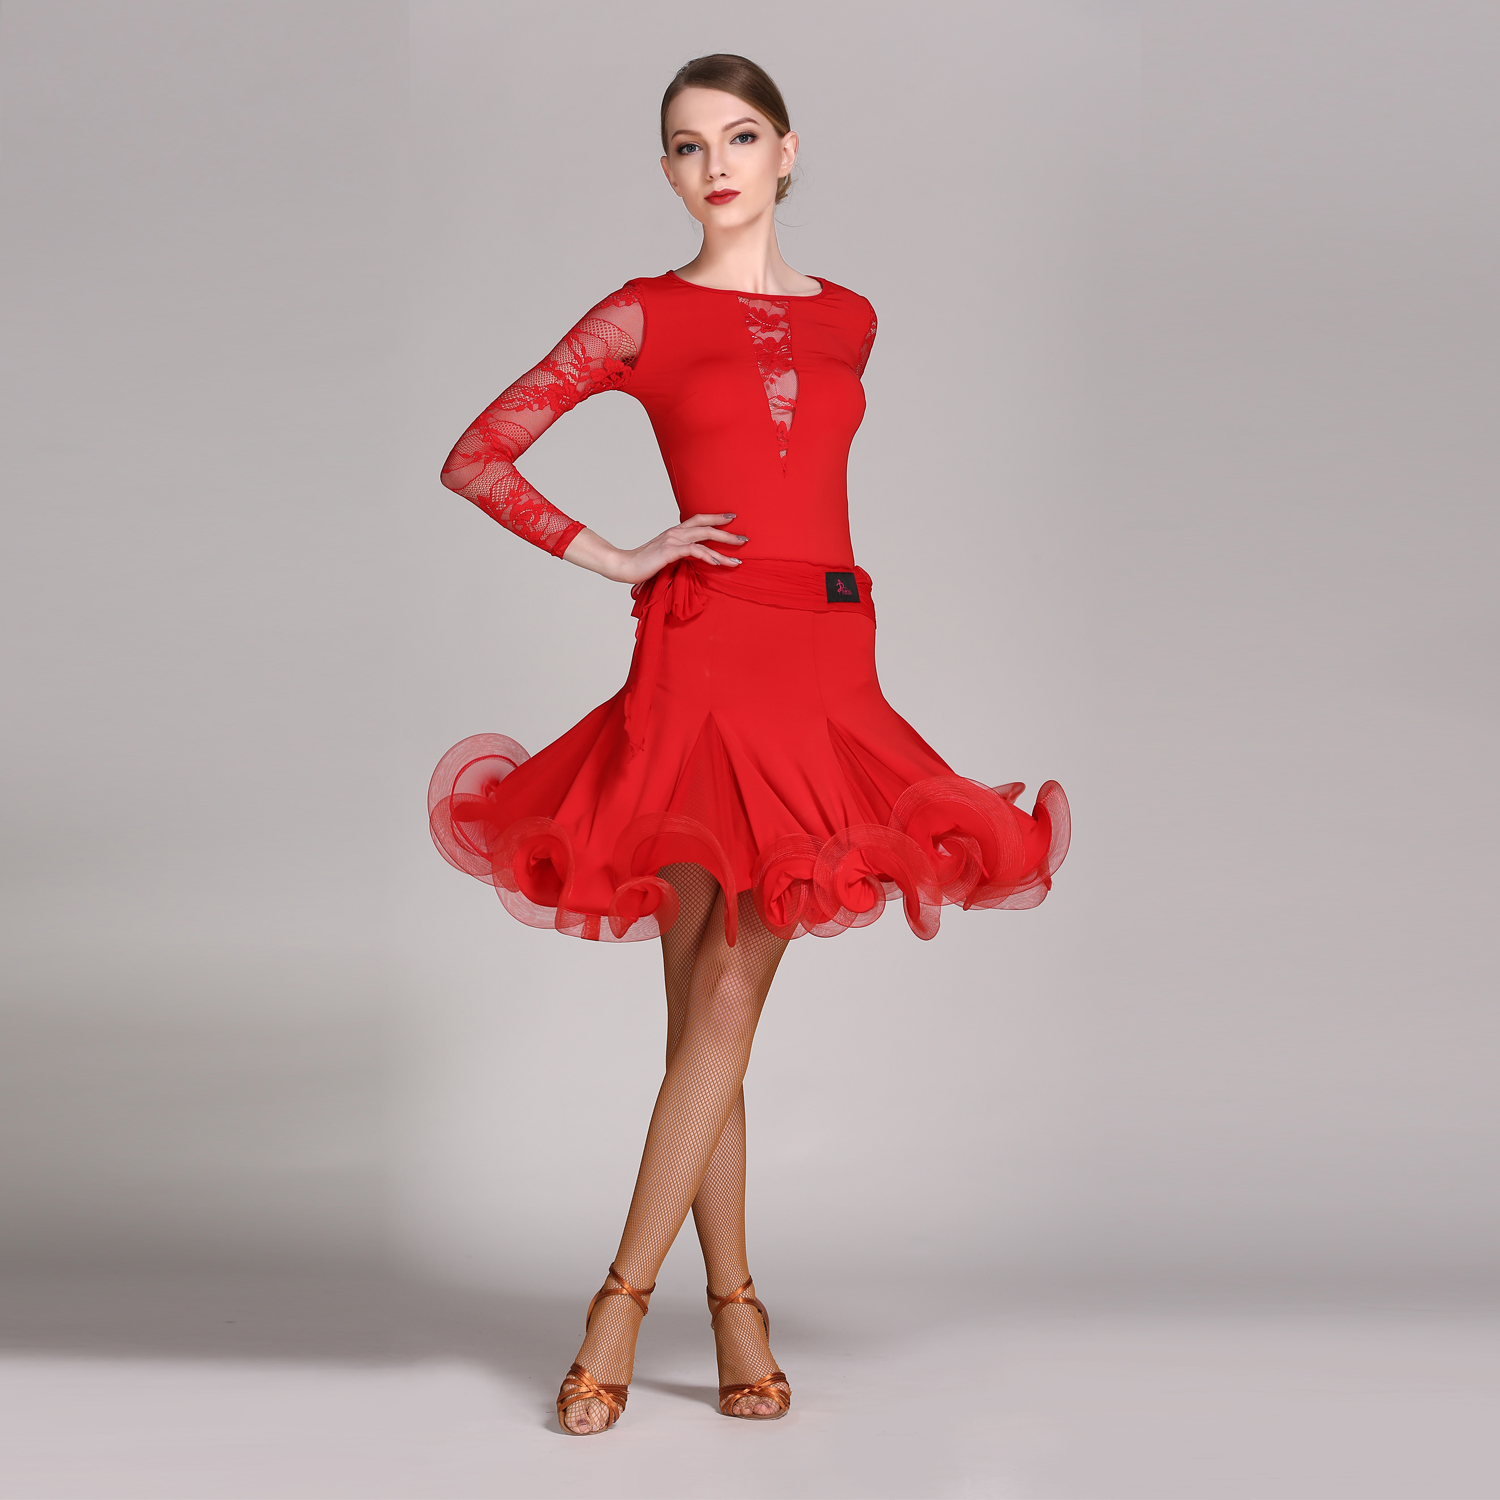 GB015 and YL322 Latin Dance Top and Skirt Suits Dance Dress Ballroom Costume Leotard Women Lady Adult Evening Party DressGB015 and YL322 Latin Dance Top and Skirt Suits Dance Dress Ballroom Costume Leotard Women Lady Adult Evening Party Dress